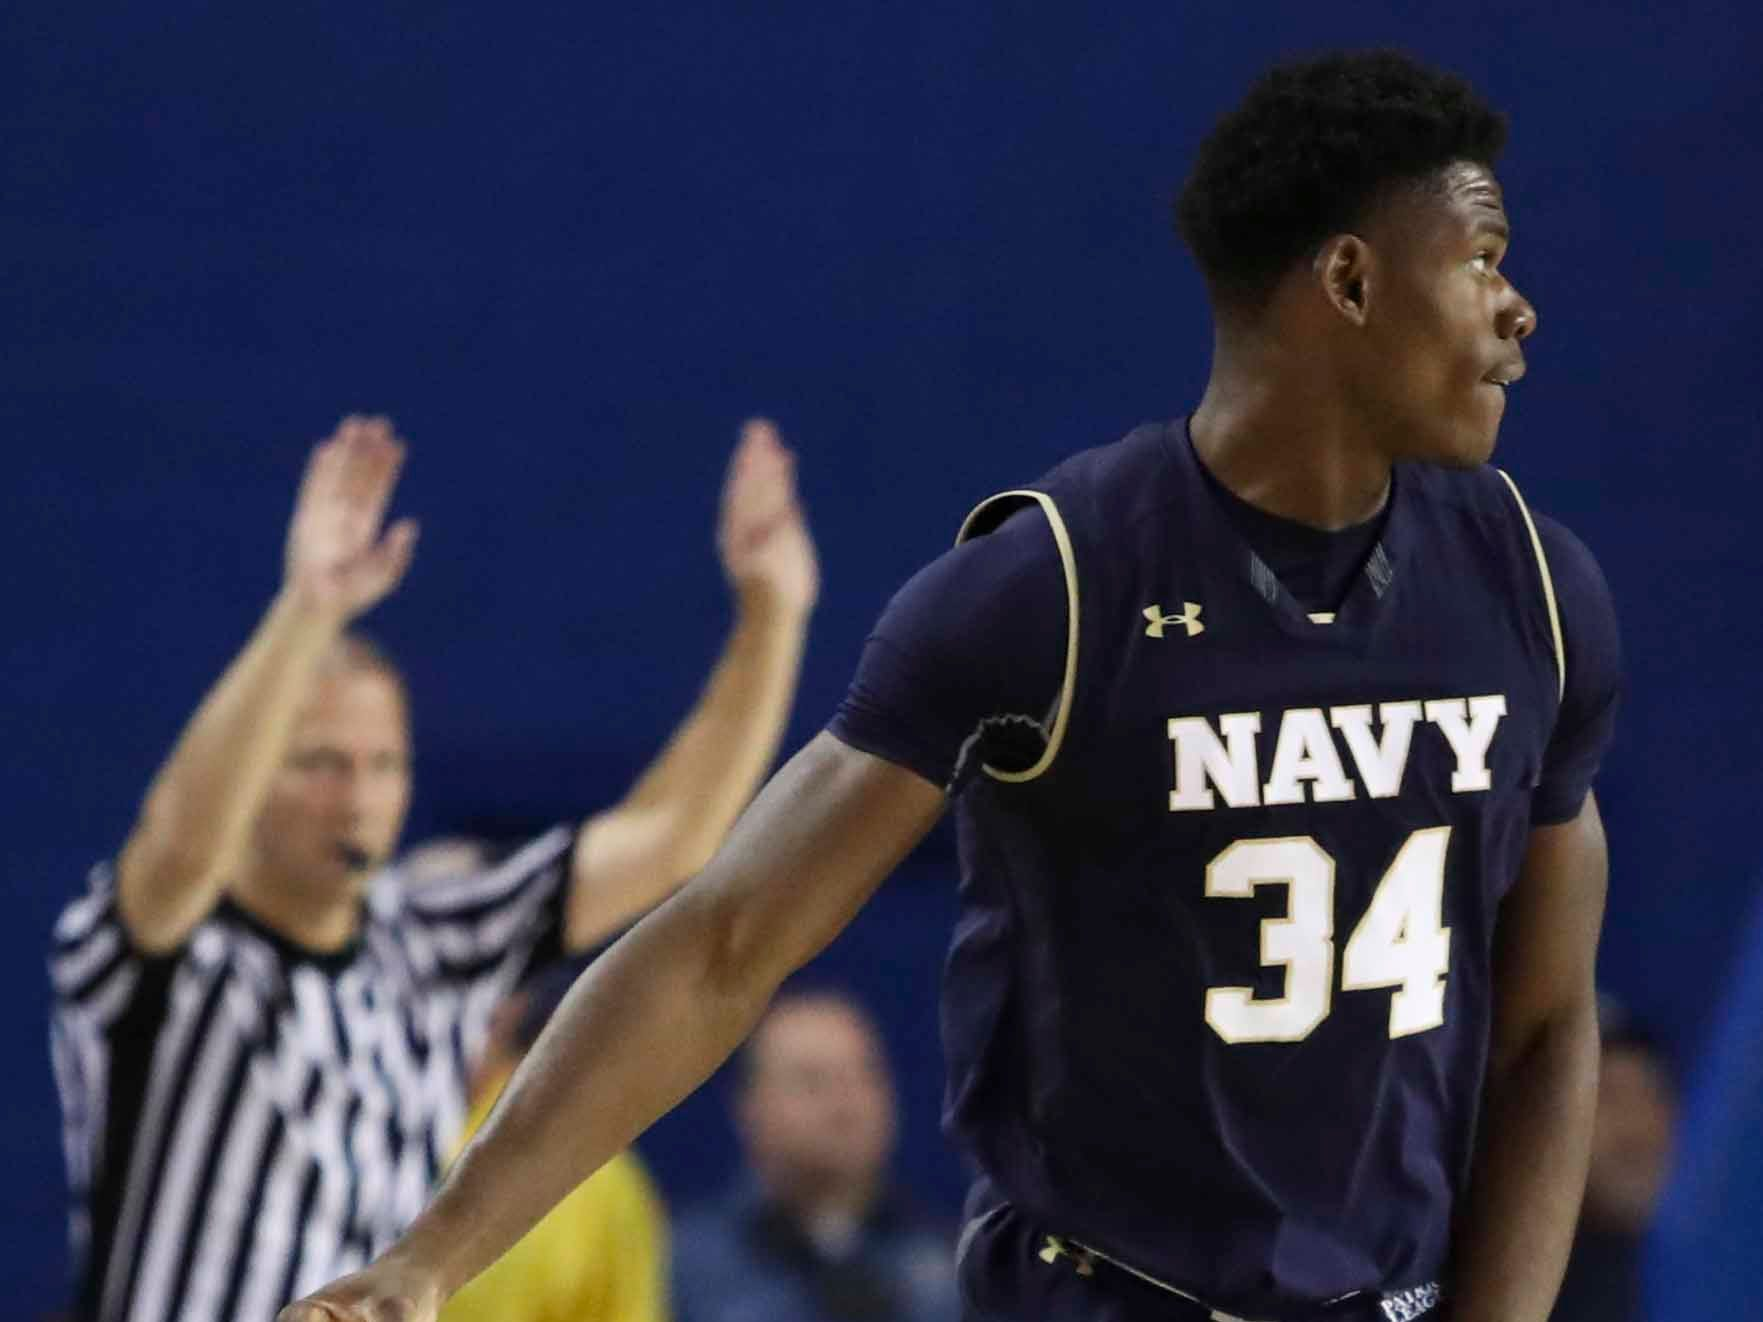 Navy's Danny Ogele reacts after hitting a three-pointer in the first half at the Bob Carpenter Center Wednesday.